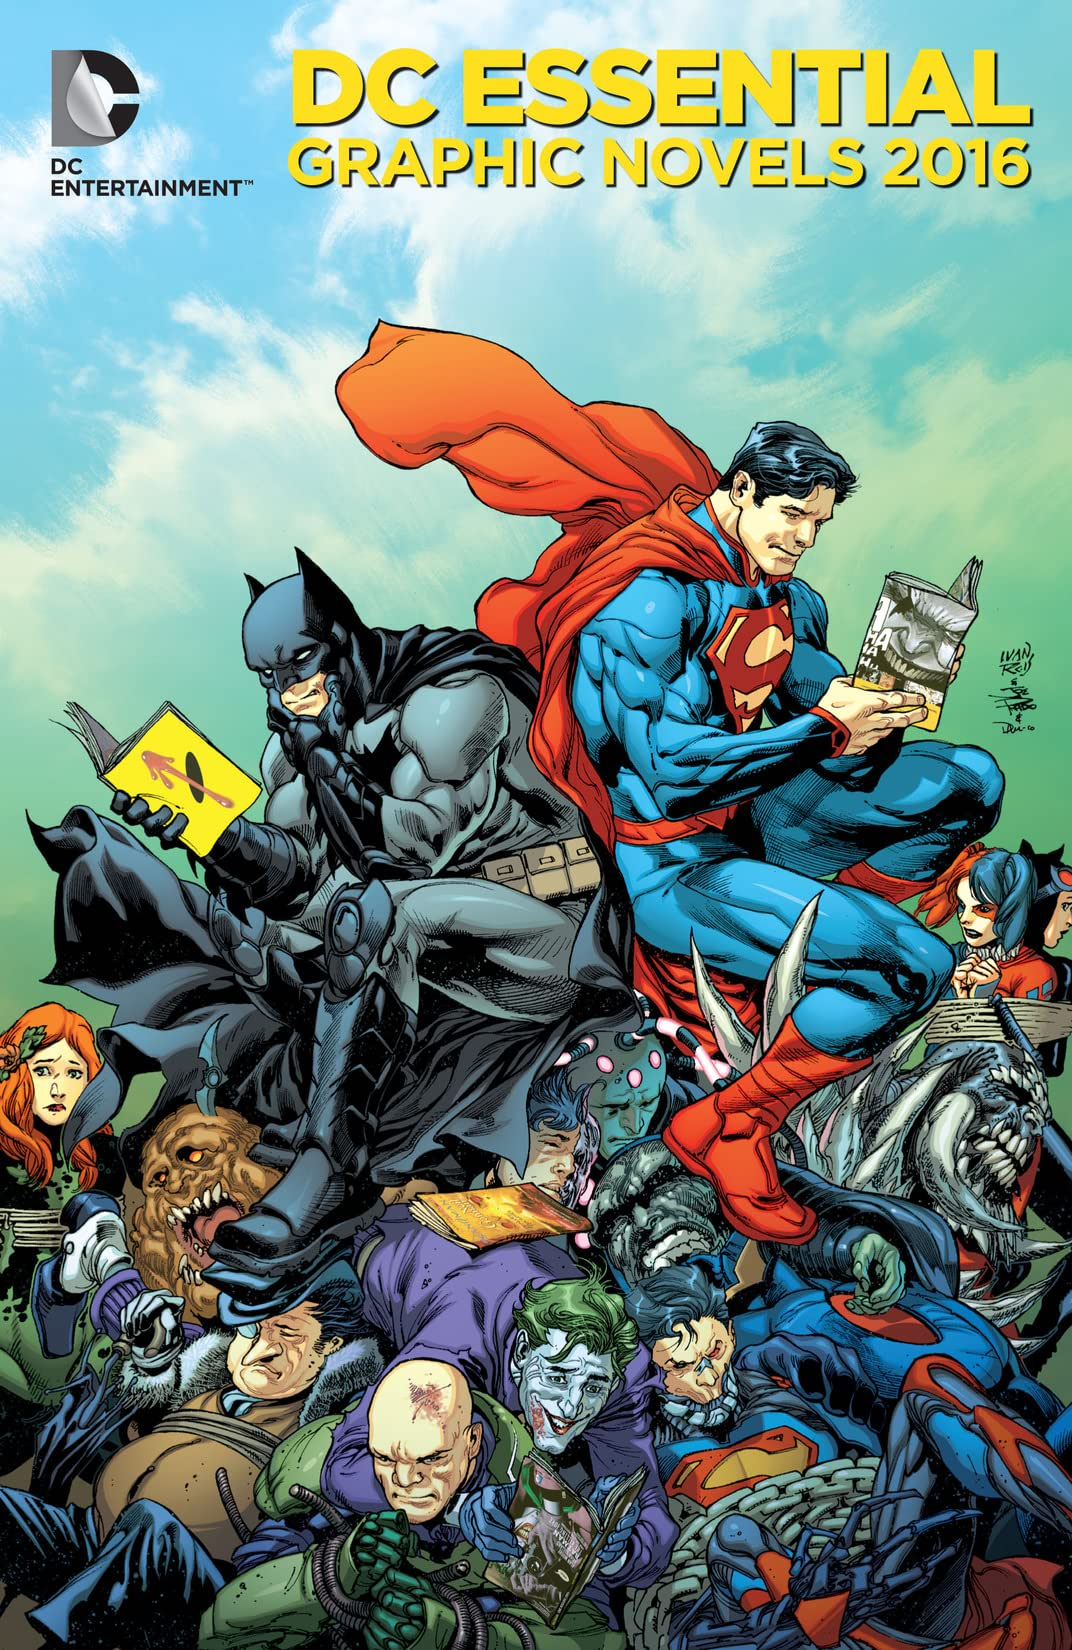 DC Entertainment Essentials Catalog 2016